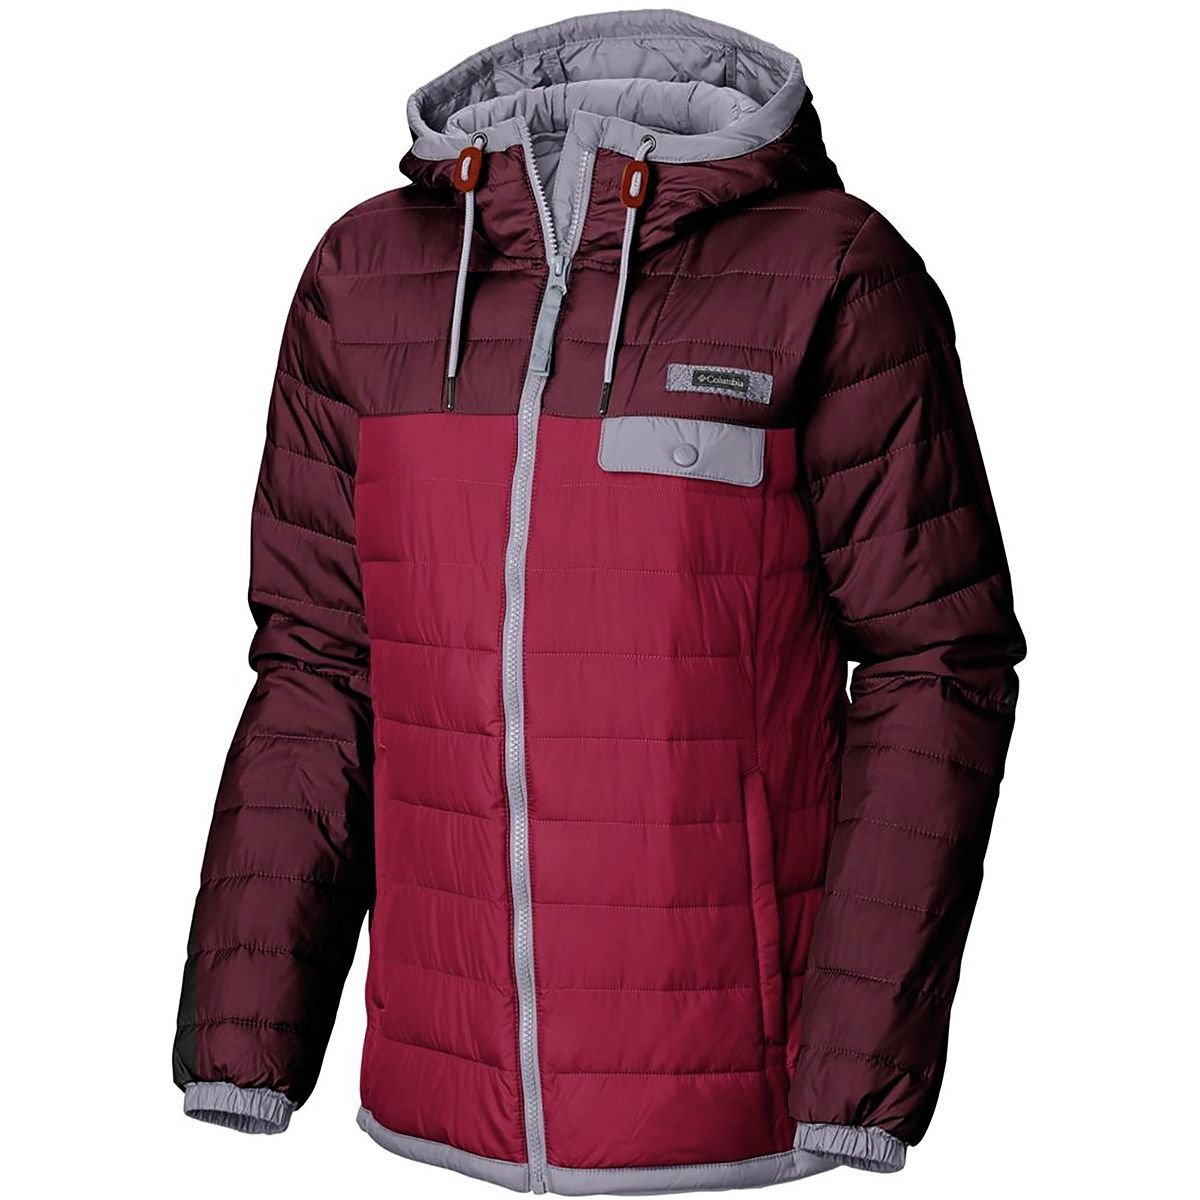 Columbia Mountainside Full-Zip Jacket - Women's Pomegranate/Rich Wine, M